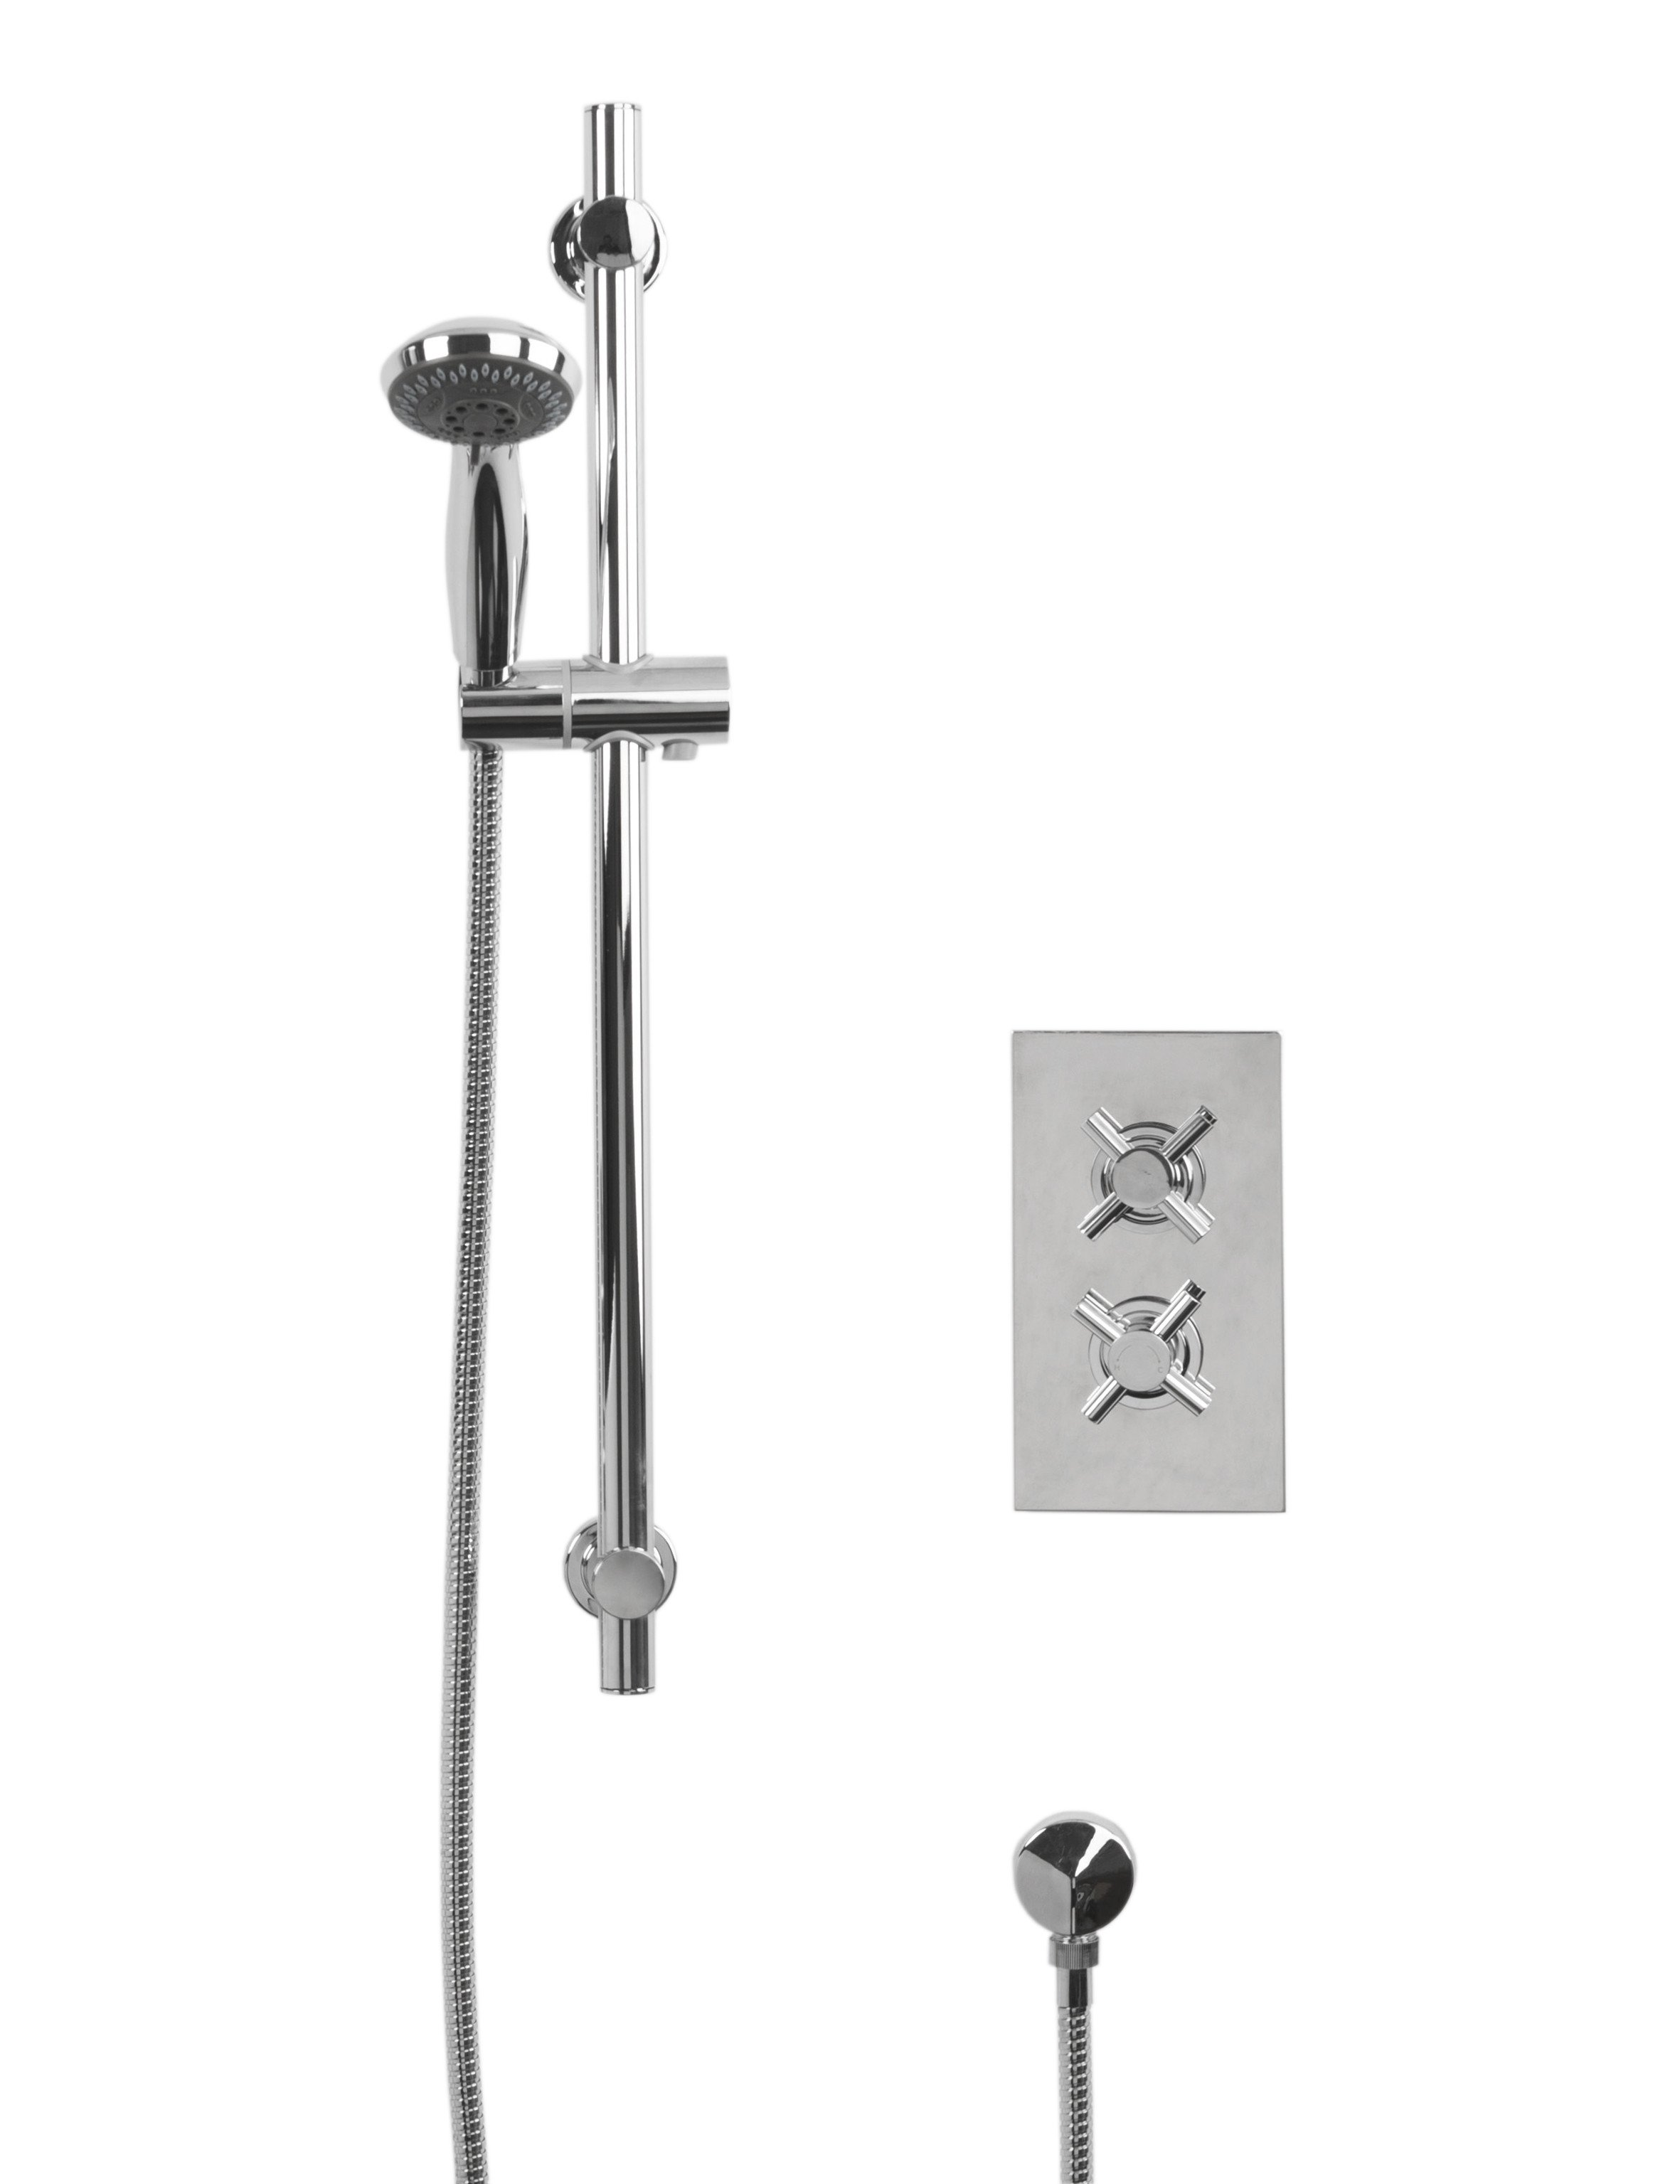 Cross Twin Thermostatic Valve With Clyde Slide Rail Kit & Round Shower Elbow